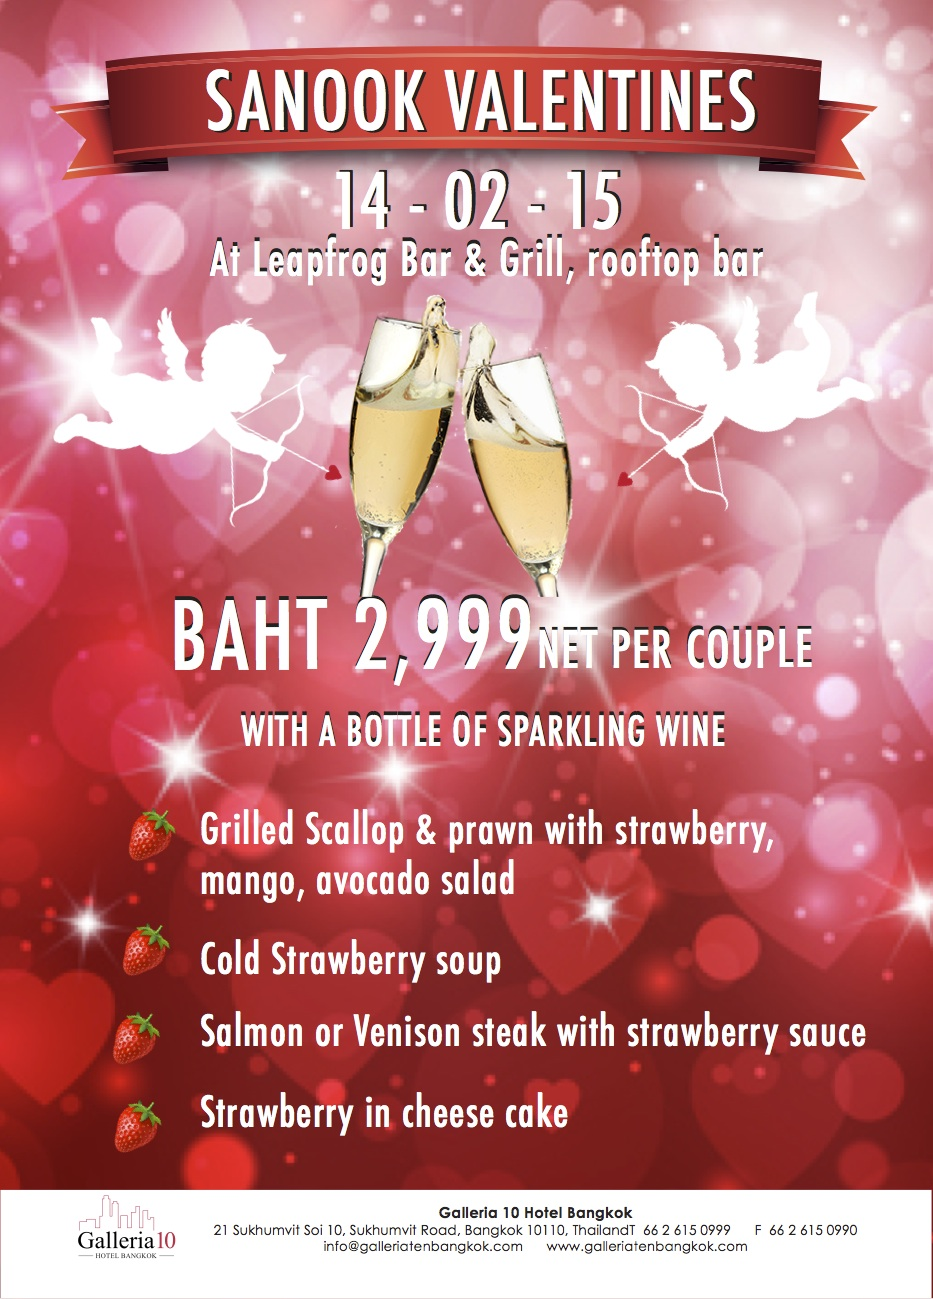 valentines day set dinner at the leapfrog bar grill of the galleria ten hotel bangkok